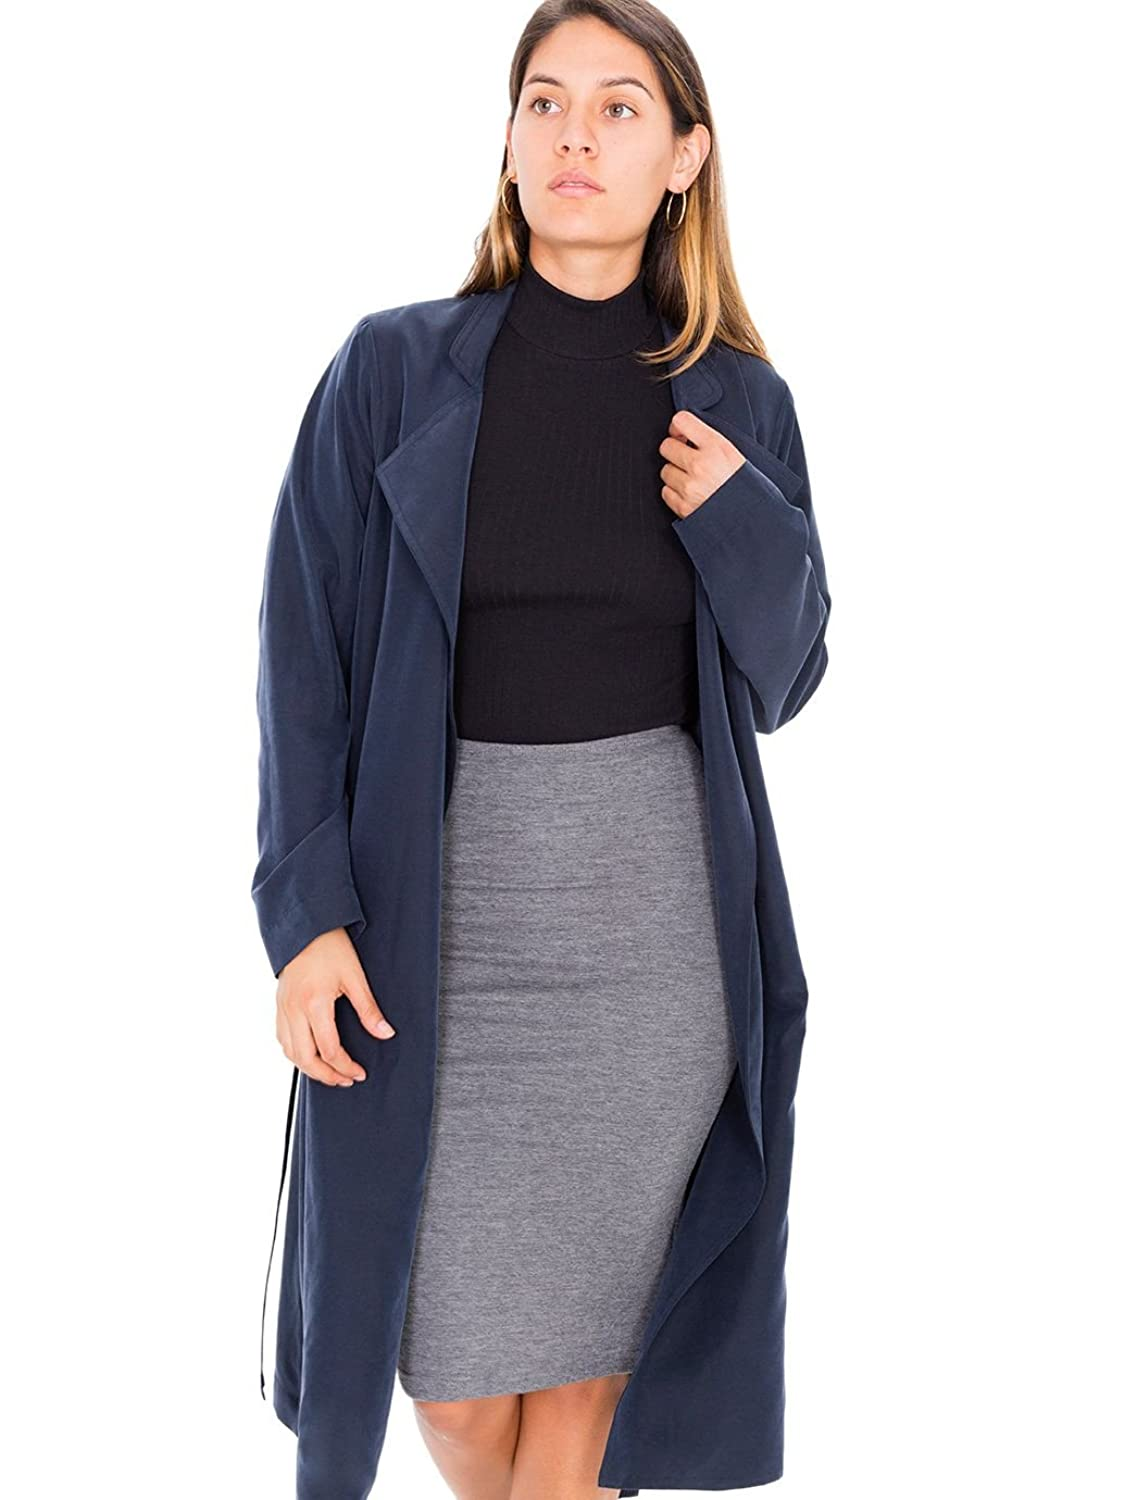 American Apparel Lightweight Dylan Trench - Naval / XS/S